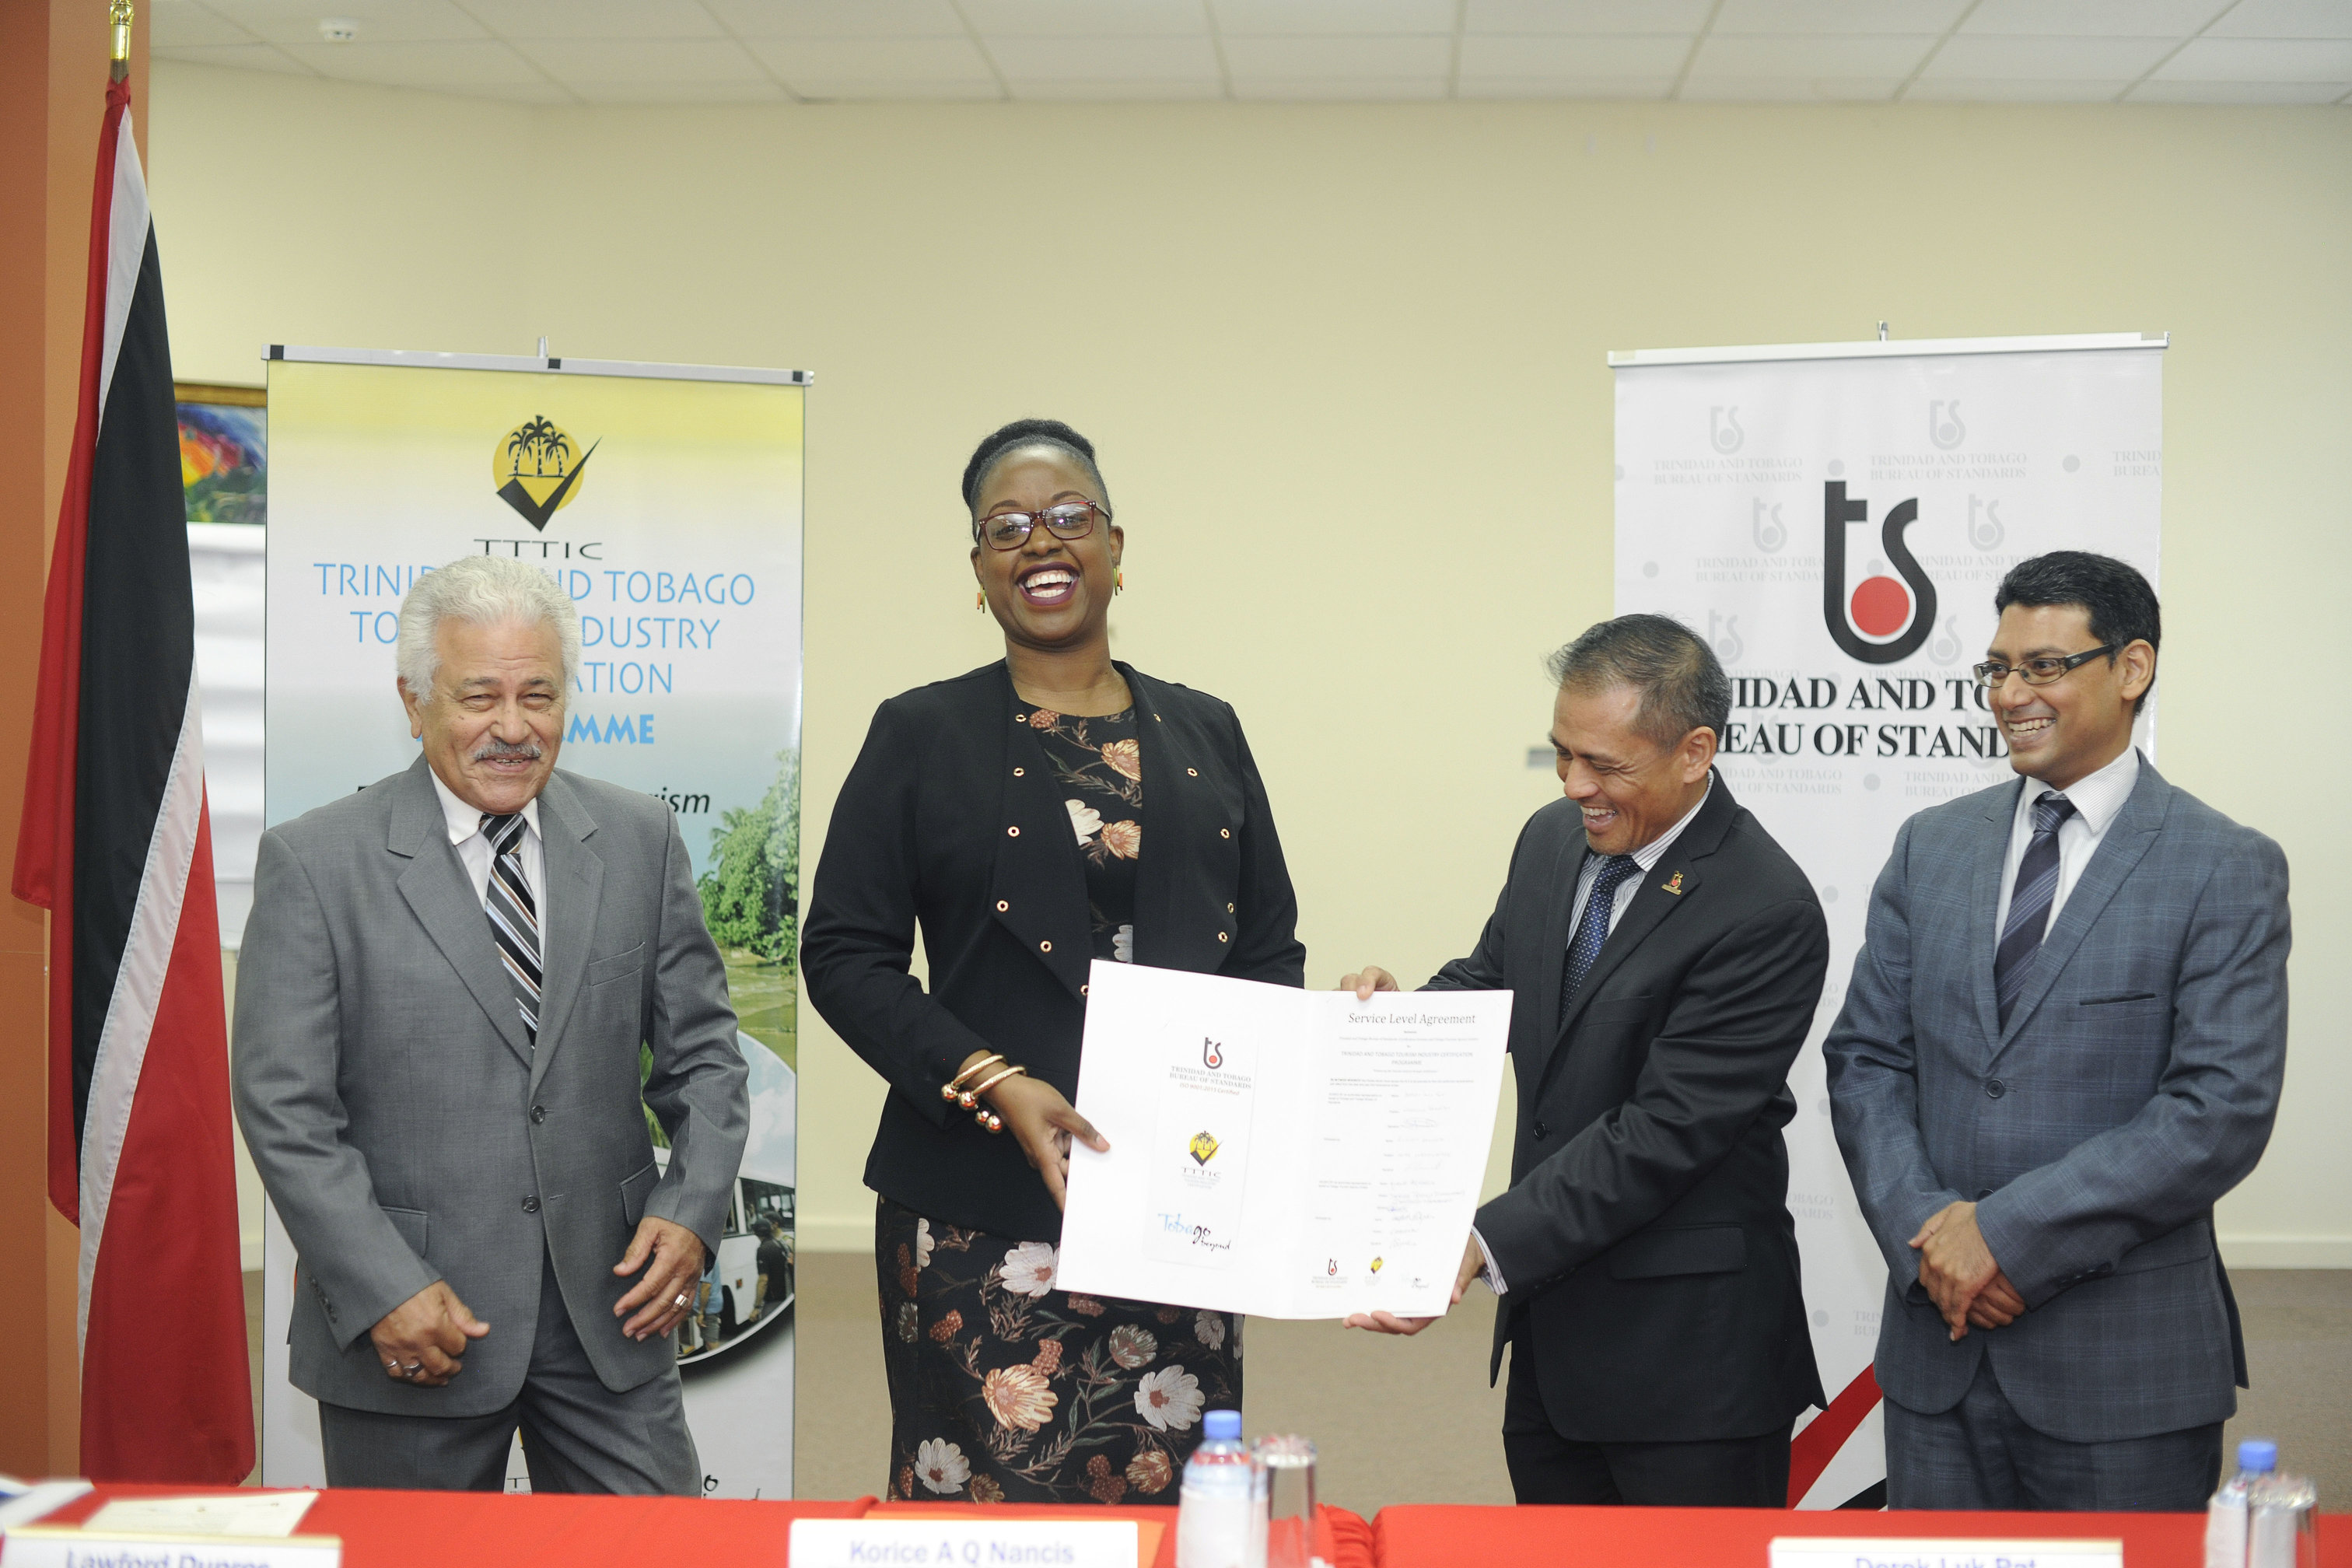 Teaming up to improve Tobago's tourism standards